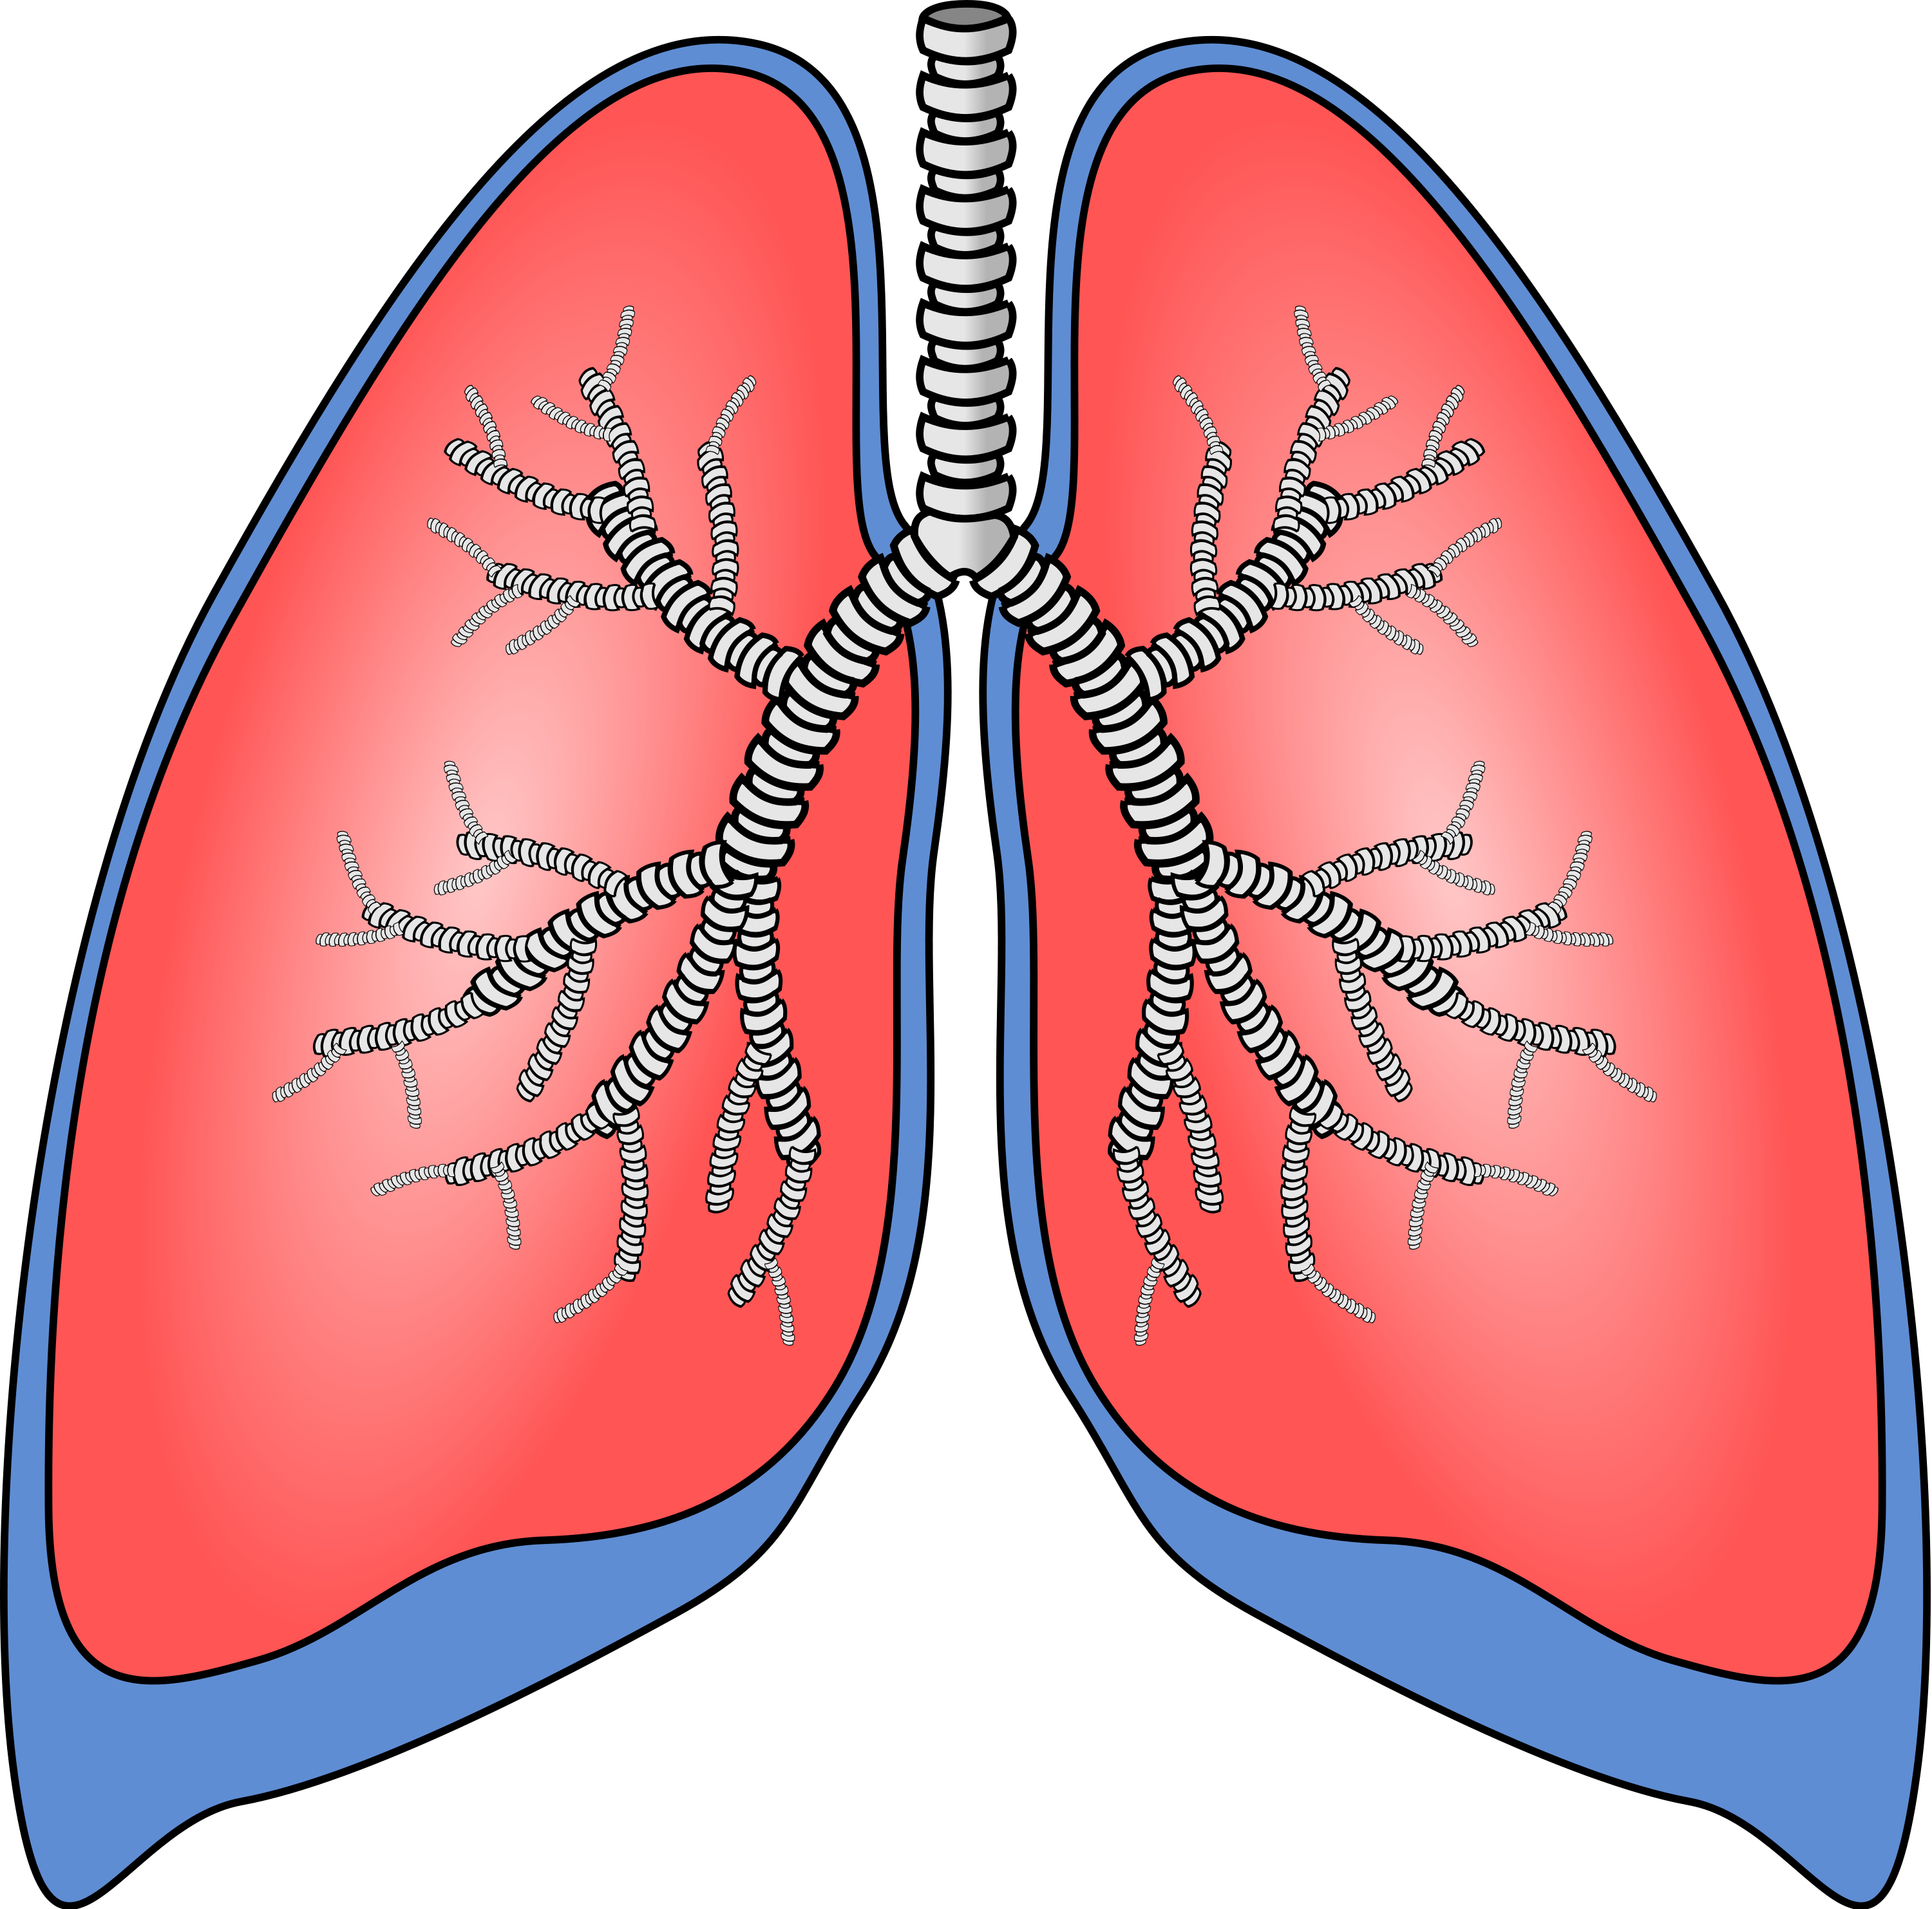 Cough clipart lung cancer. Index of farma bilder